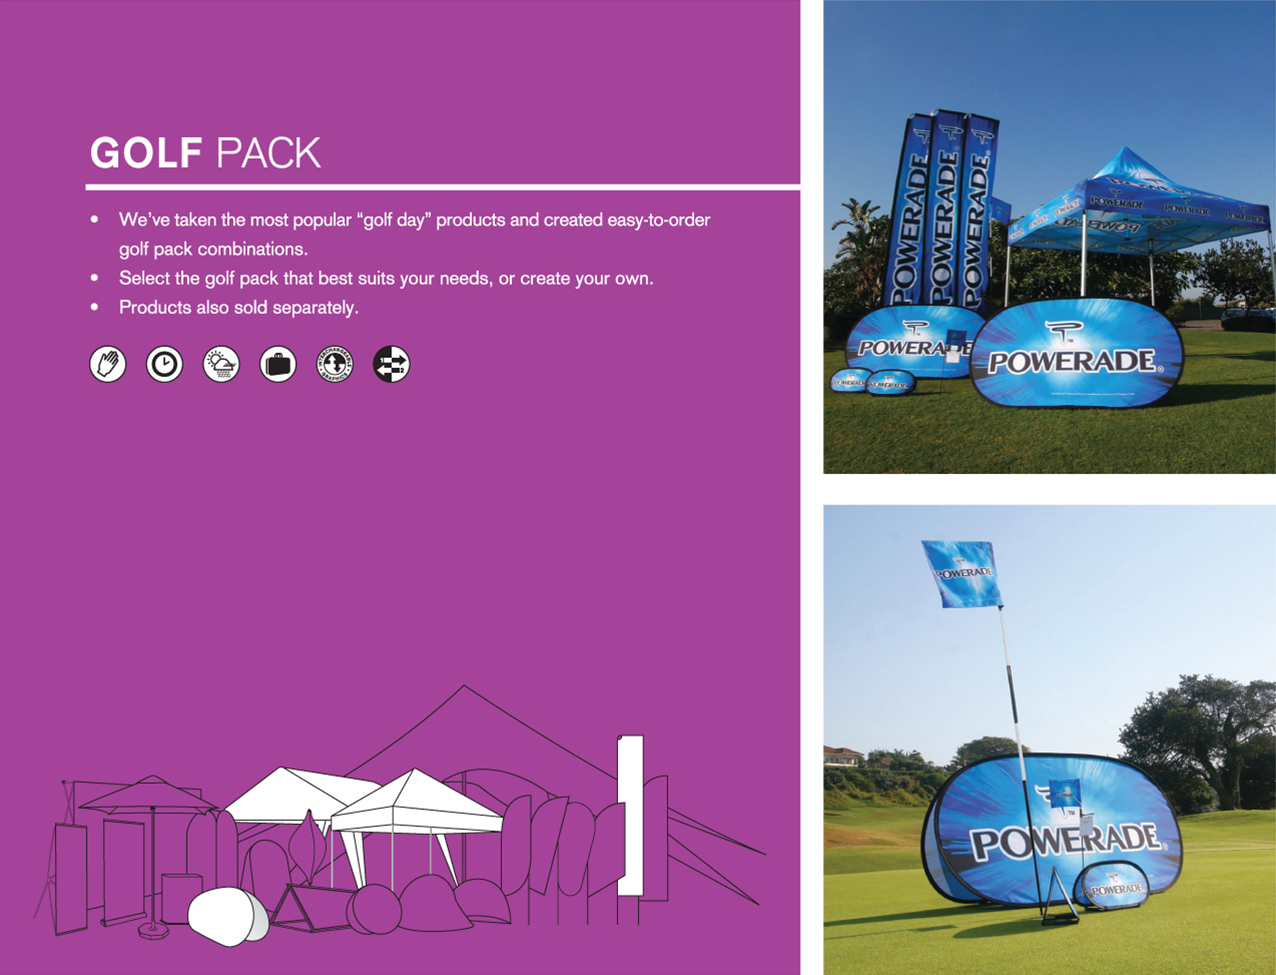 20121009121328_26-golf-packs